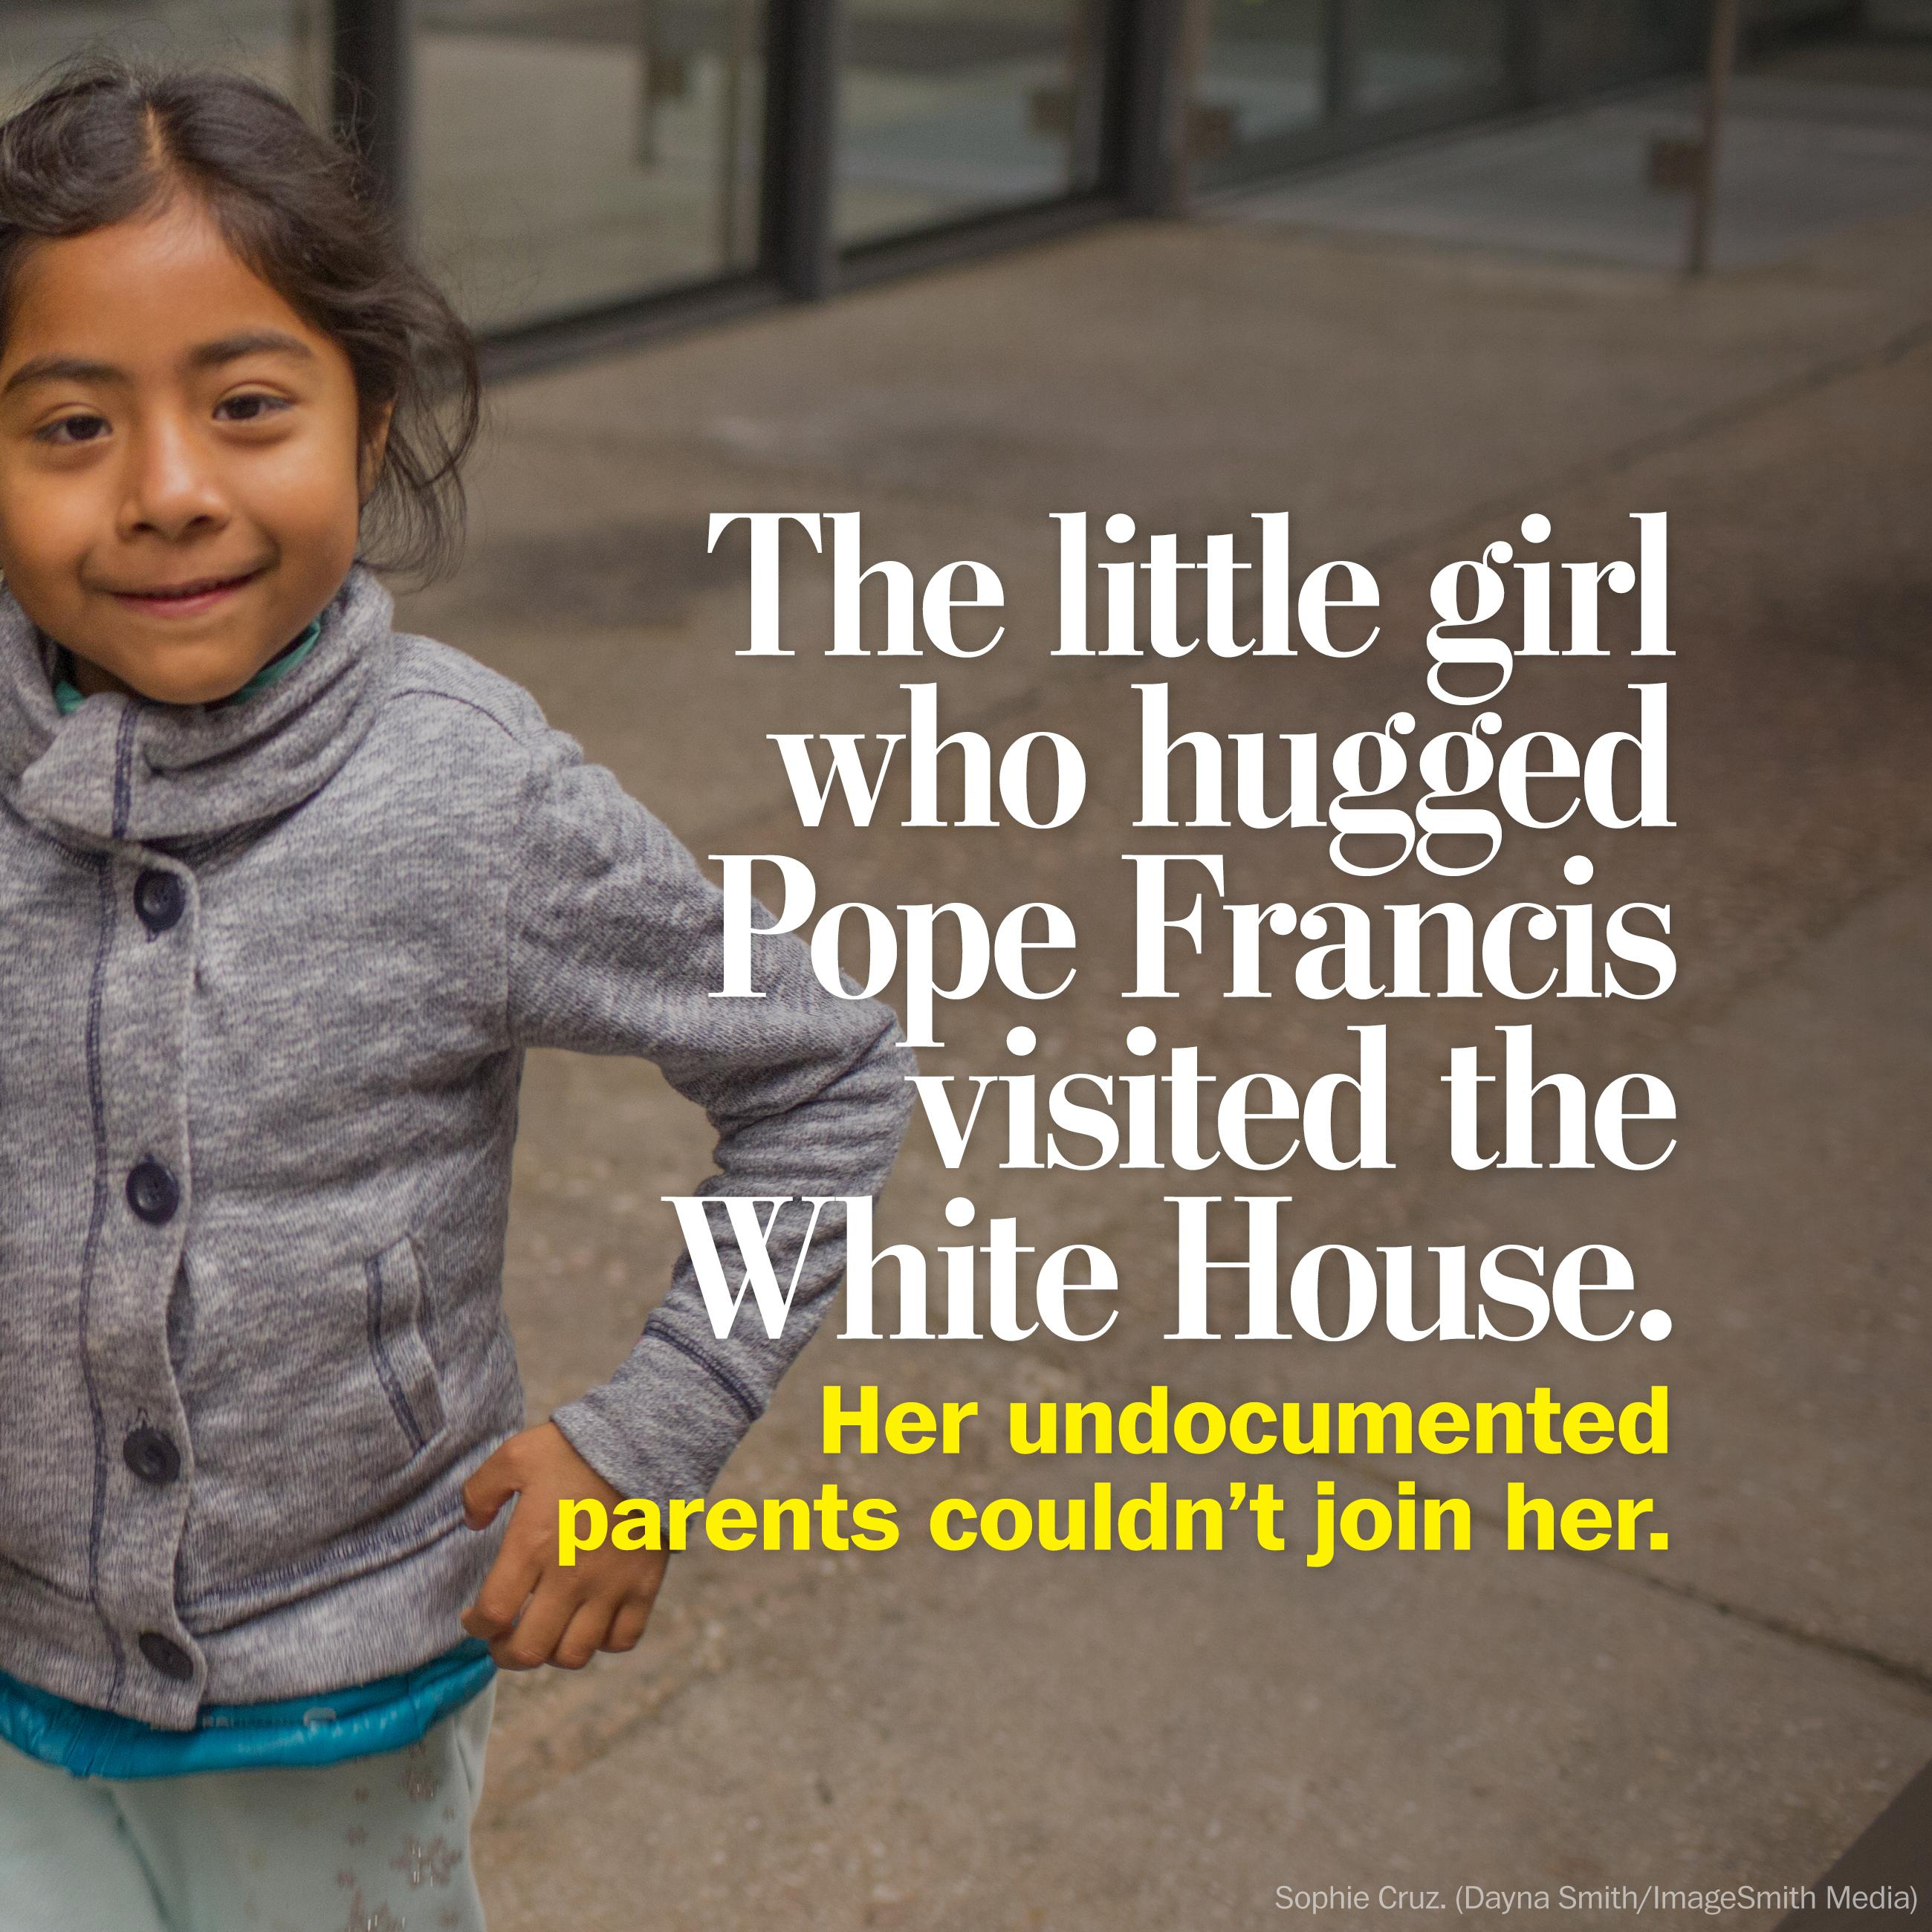 Here's what little Sophie Cruz will do at the White House Thursday